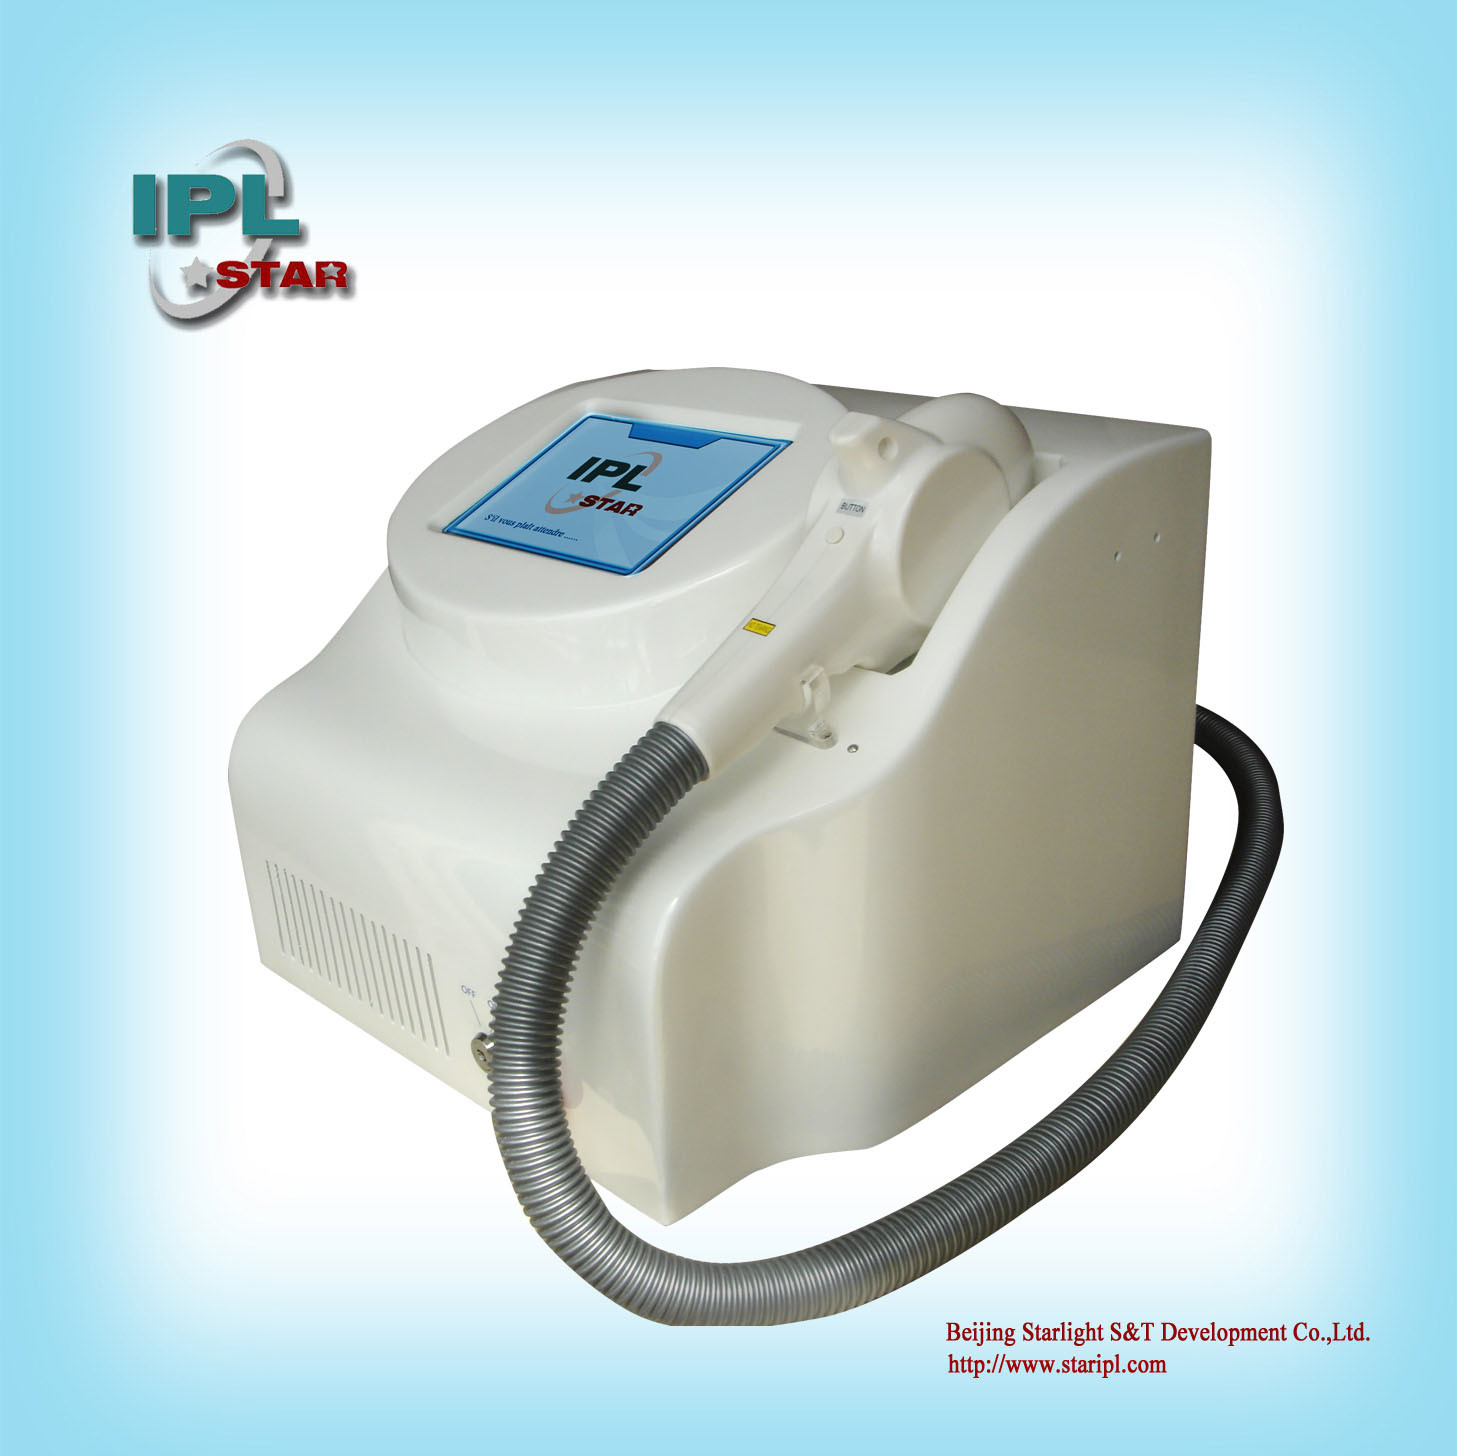 Latest Superior IPL Hair Removal System